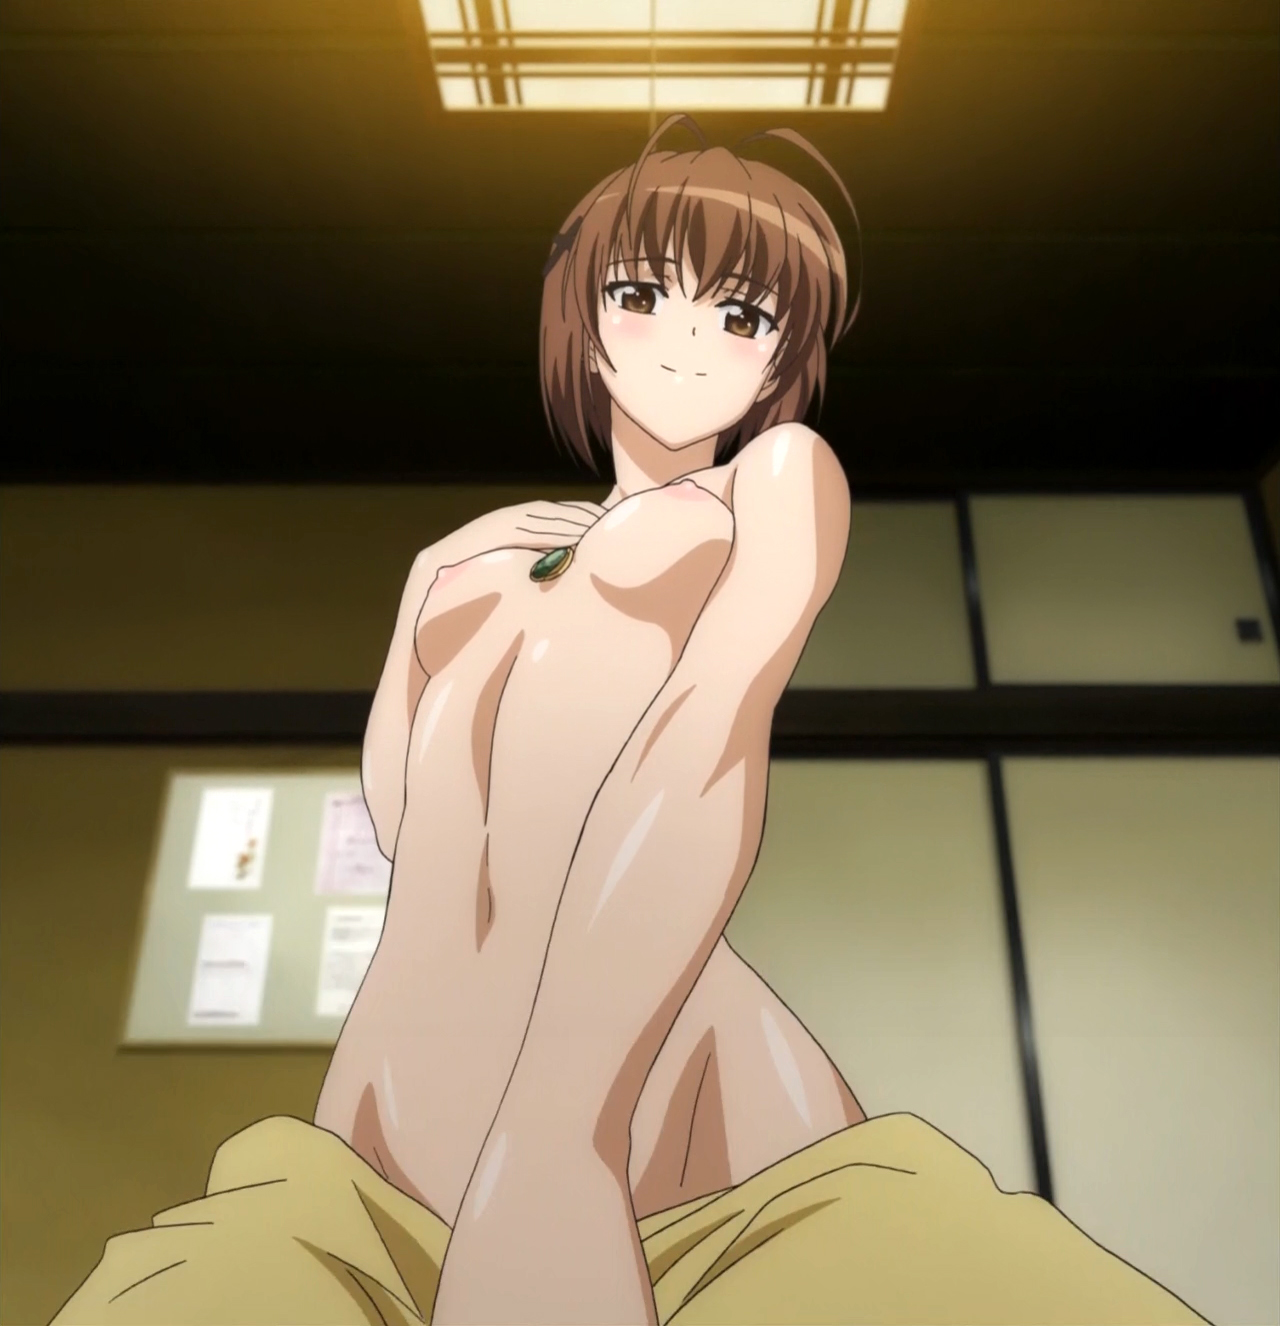 Naked lucy hentai picture sexy galleries